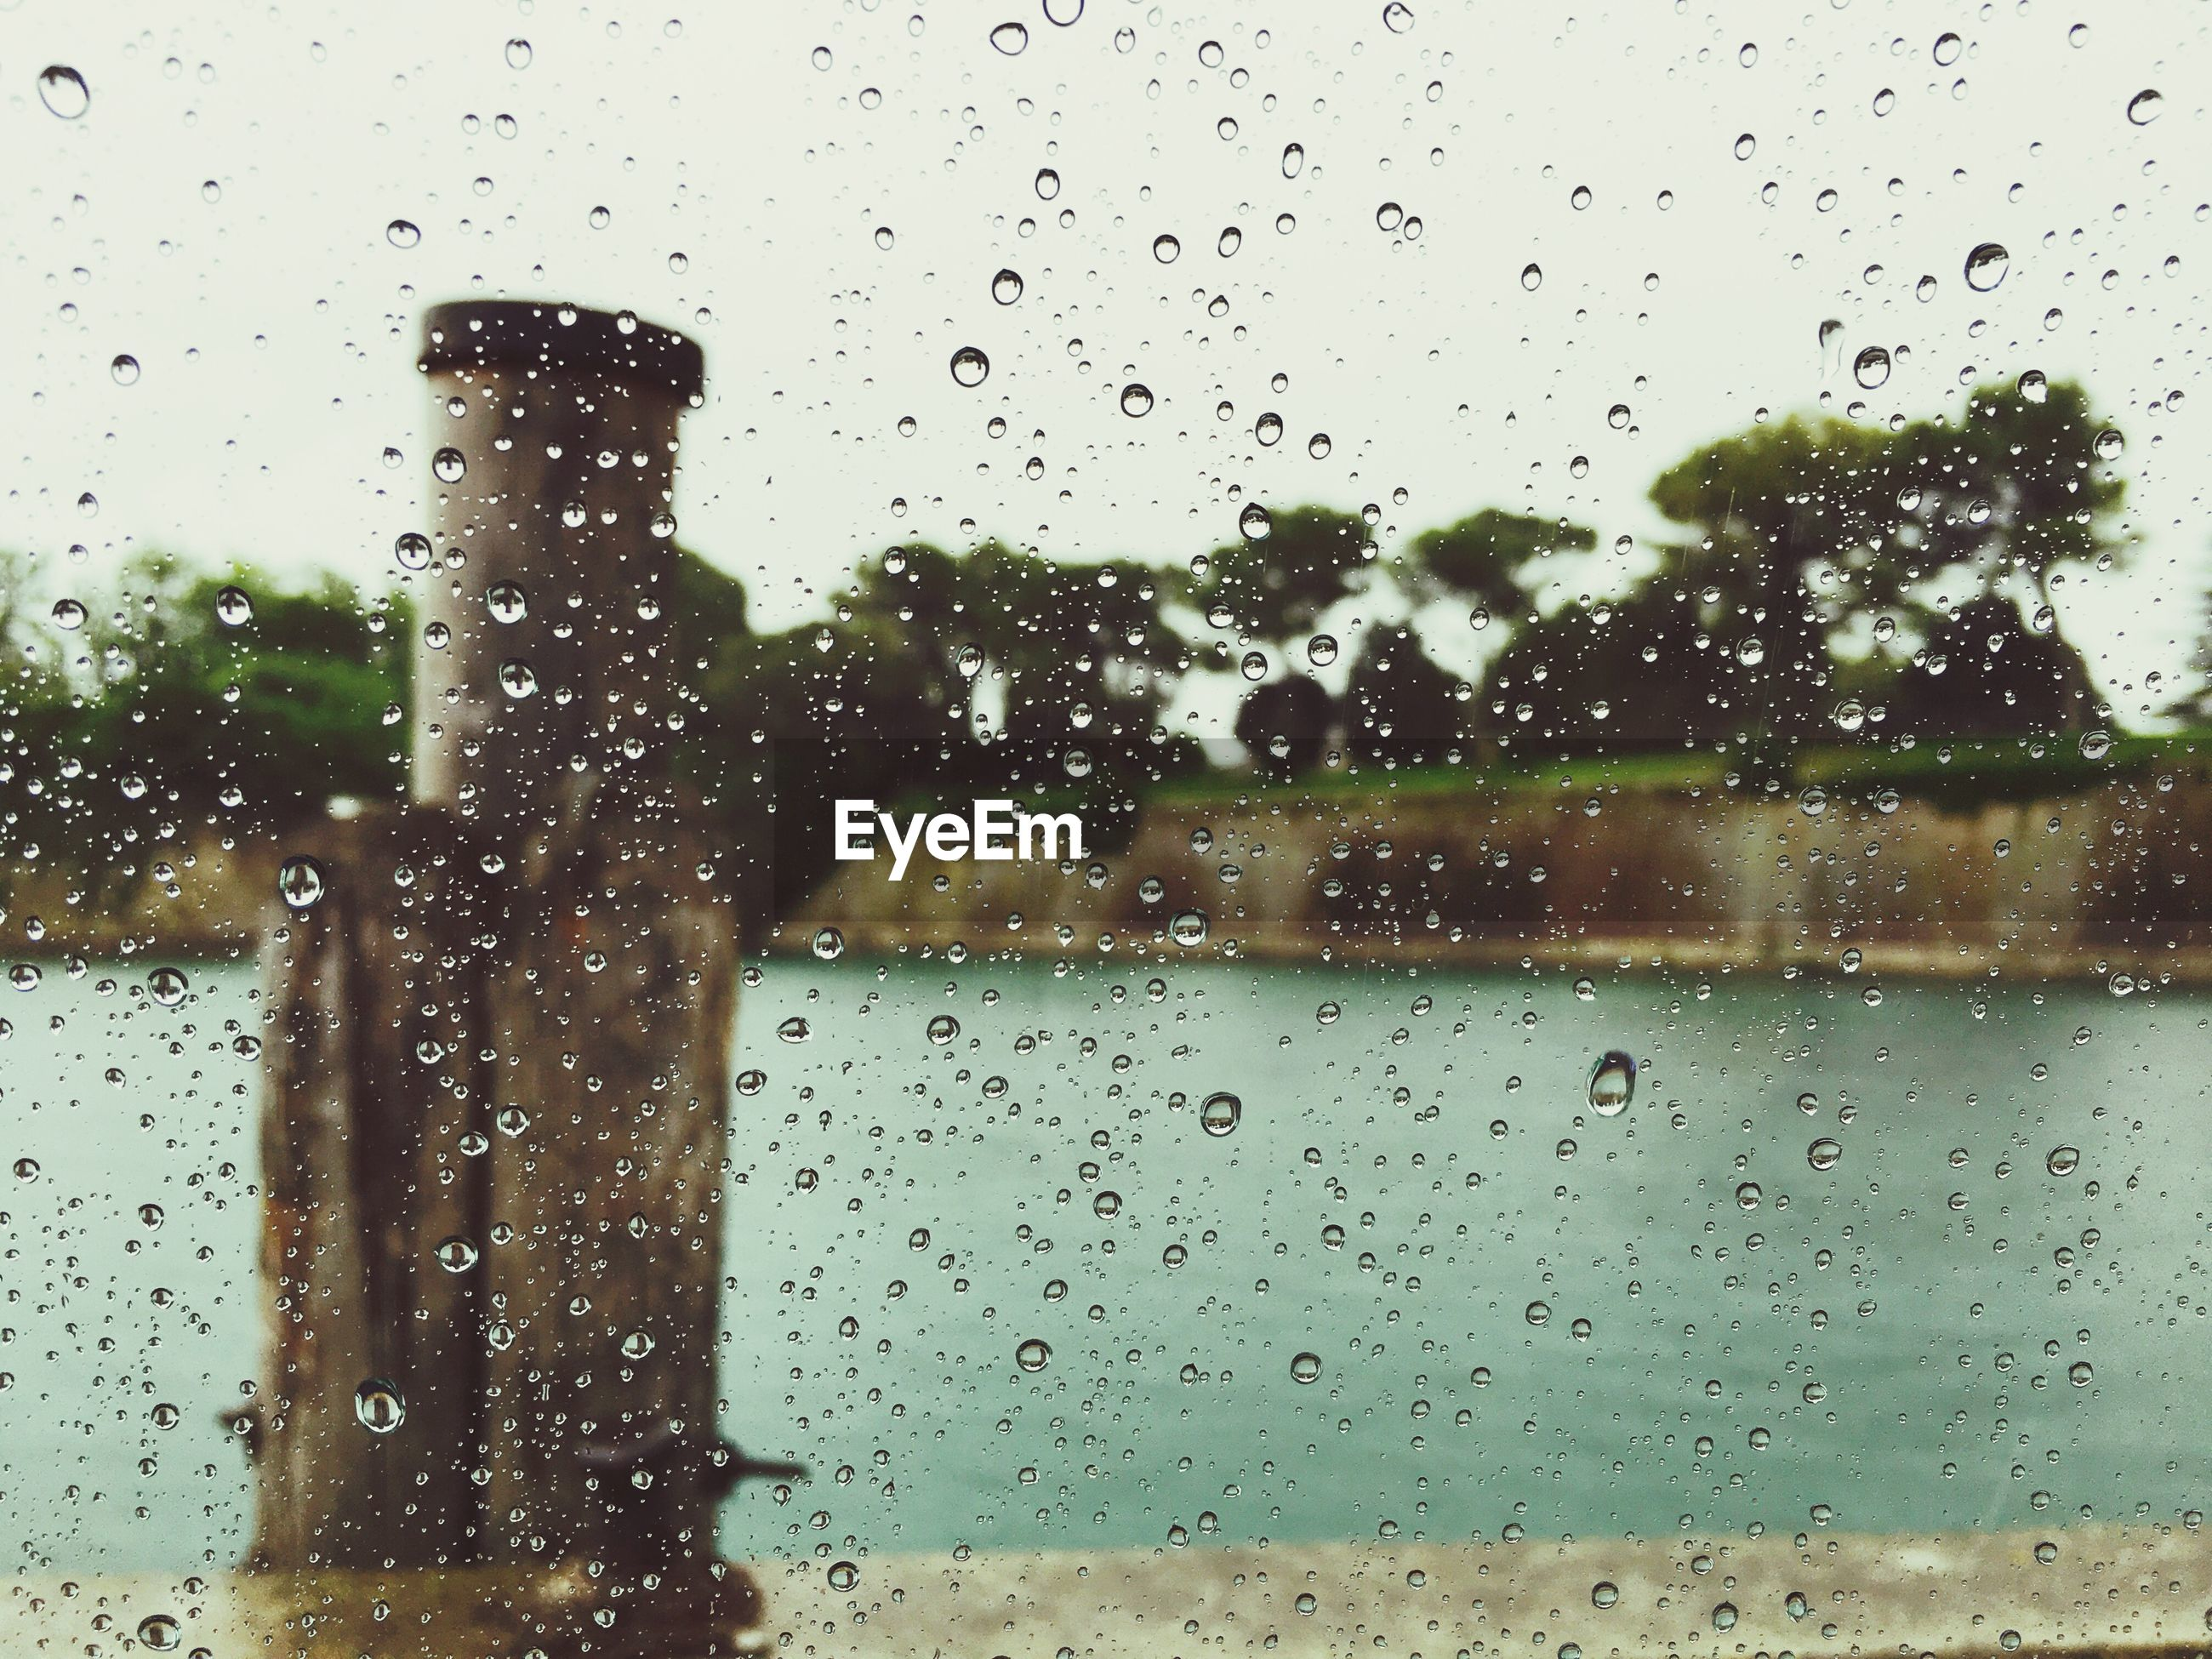 Wooden post in river against sky seen through wet glass window during monsoon